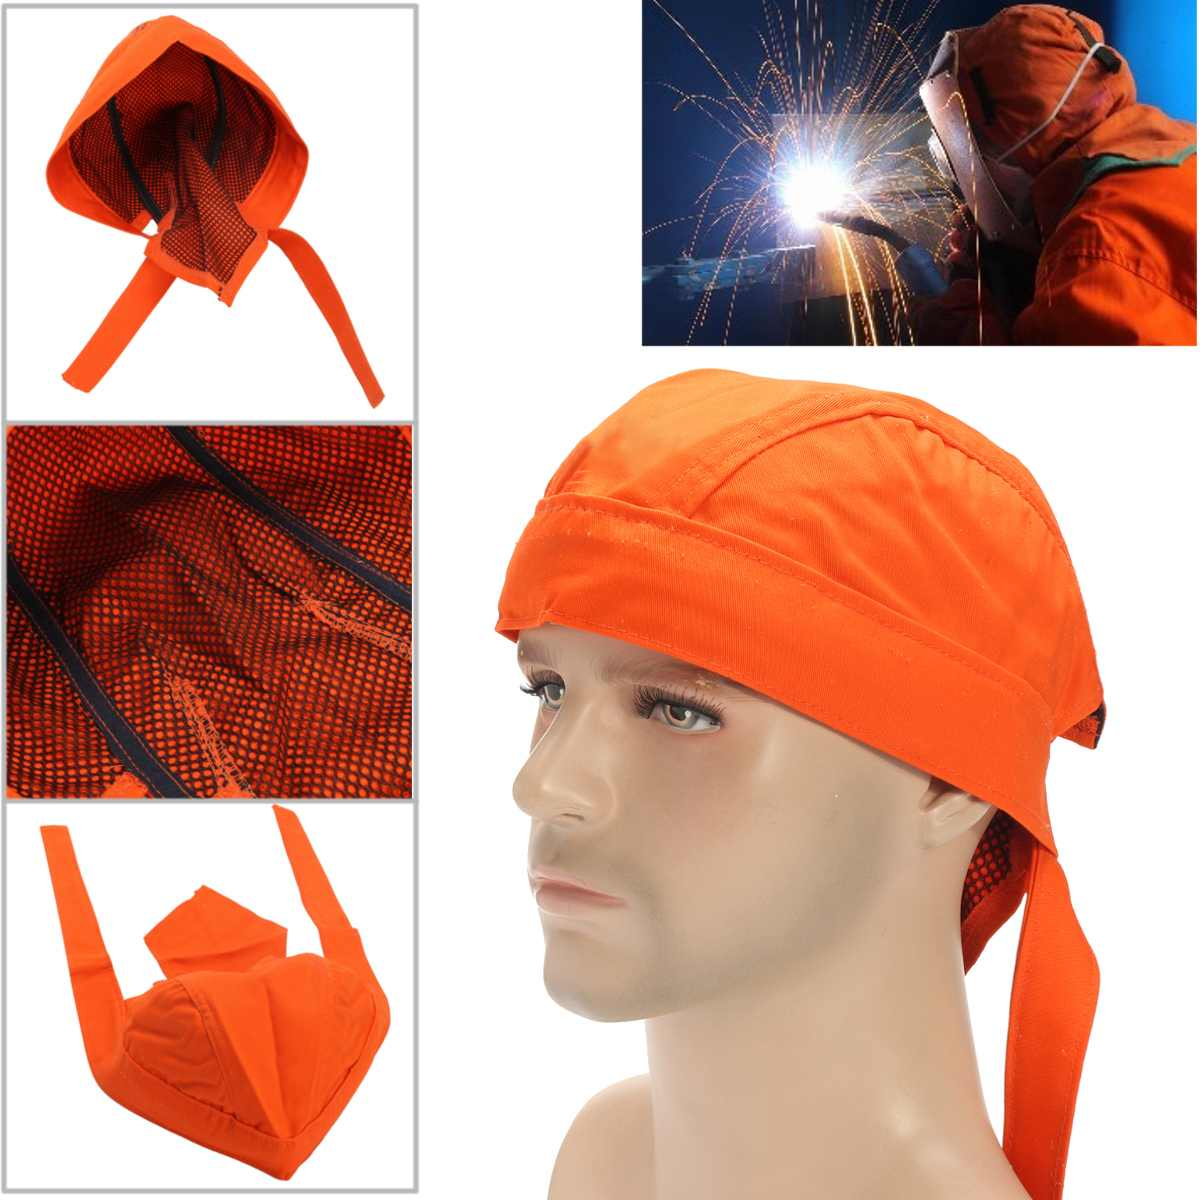 Welding Cap Welders Protective Hat Welding Helmet Cotton Cover Cap Scarf Wear Flame Retardant Fashion Adjustable Bandana Type